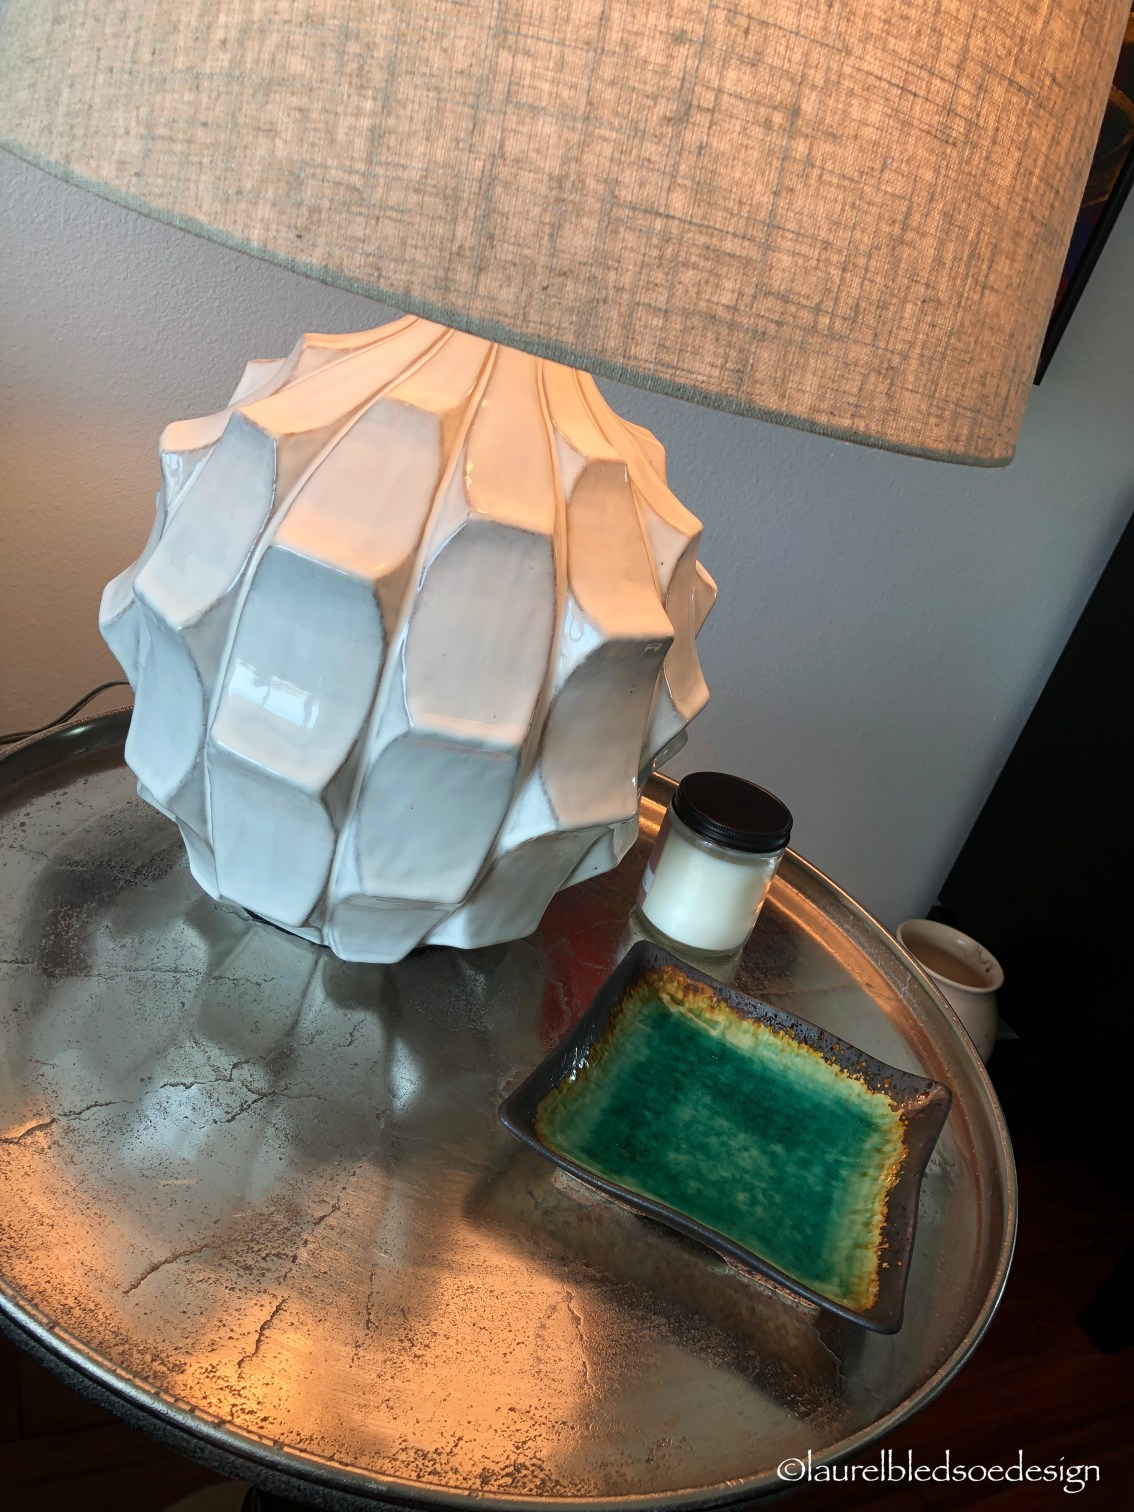 laurelbledsoedesign-table-lamps-side-tables